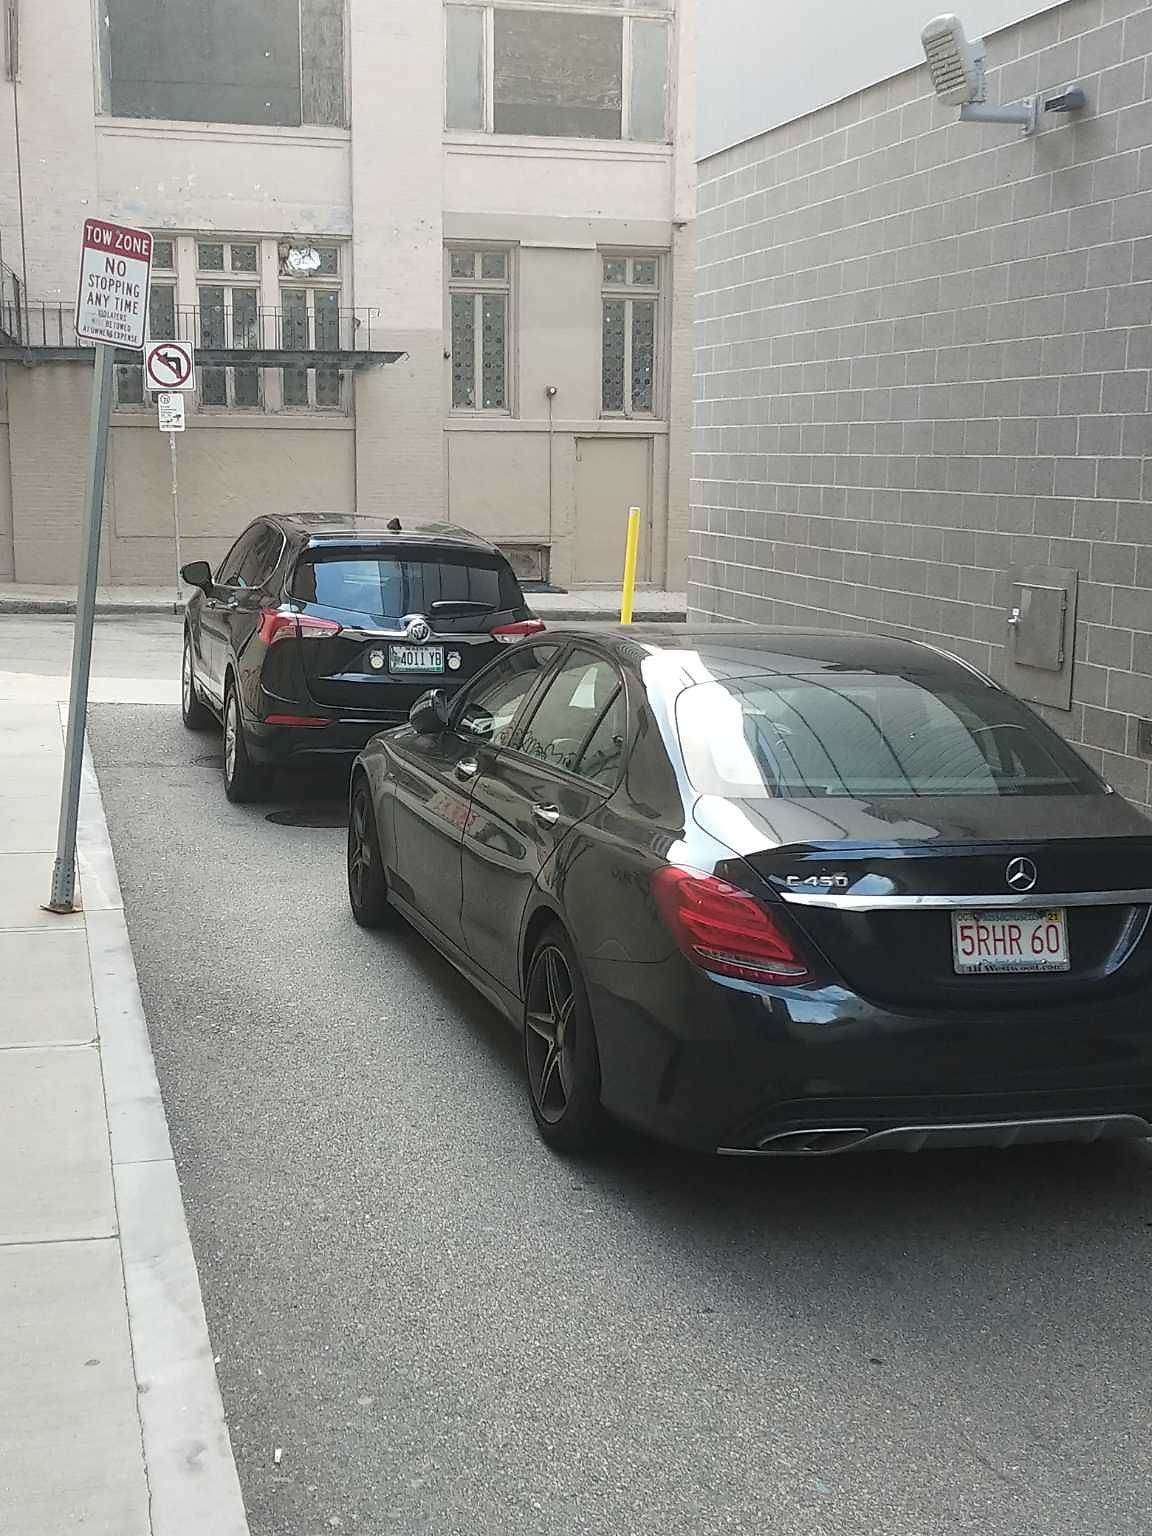 Flagrently, illegally parked cars